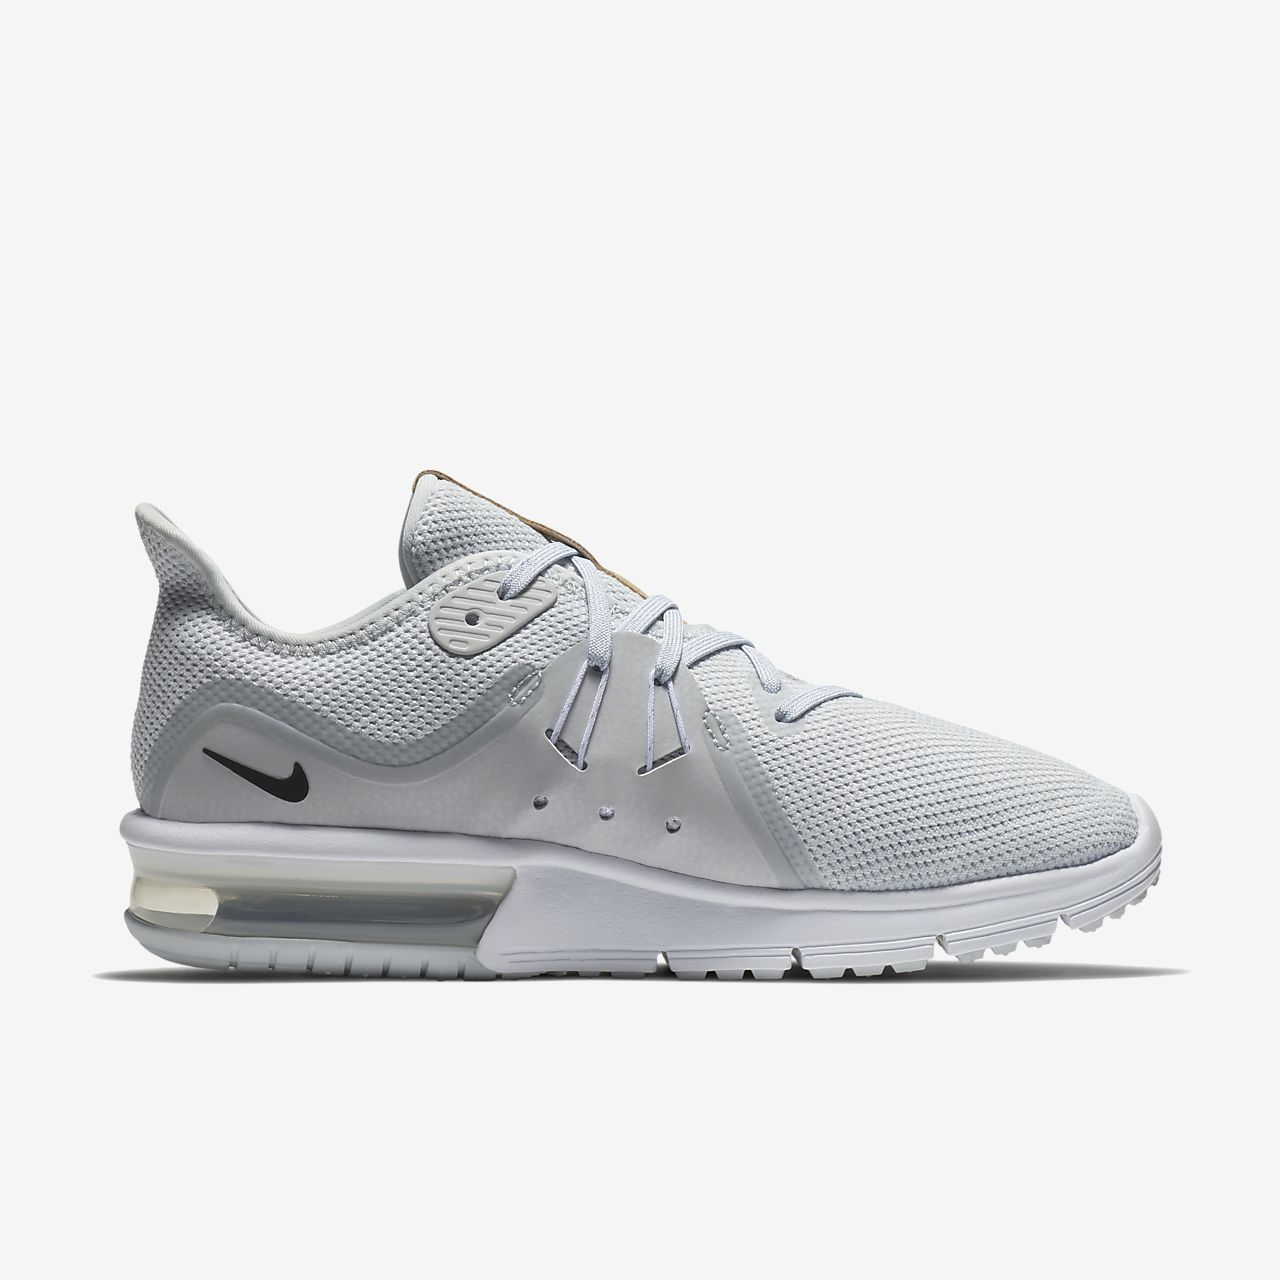 info for 0f962 39c33 Women s Shoe. Nike Air Max Sequent 3